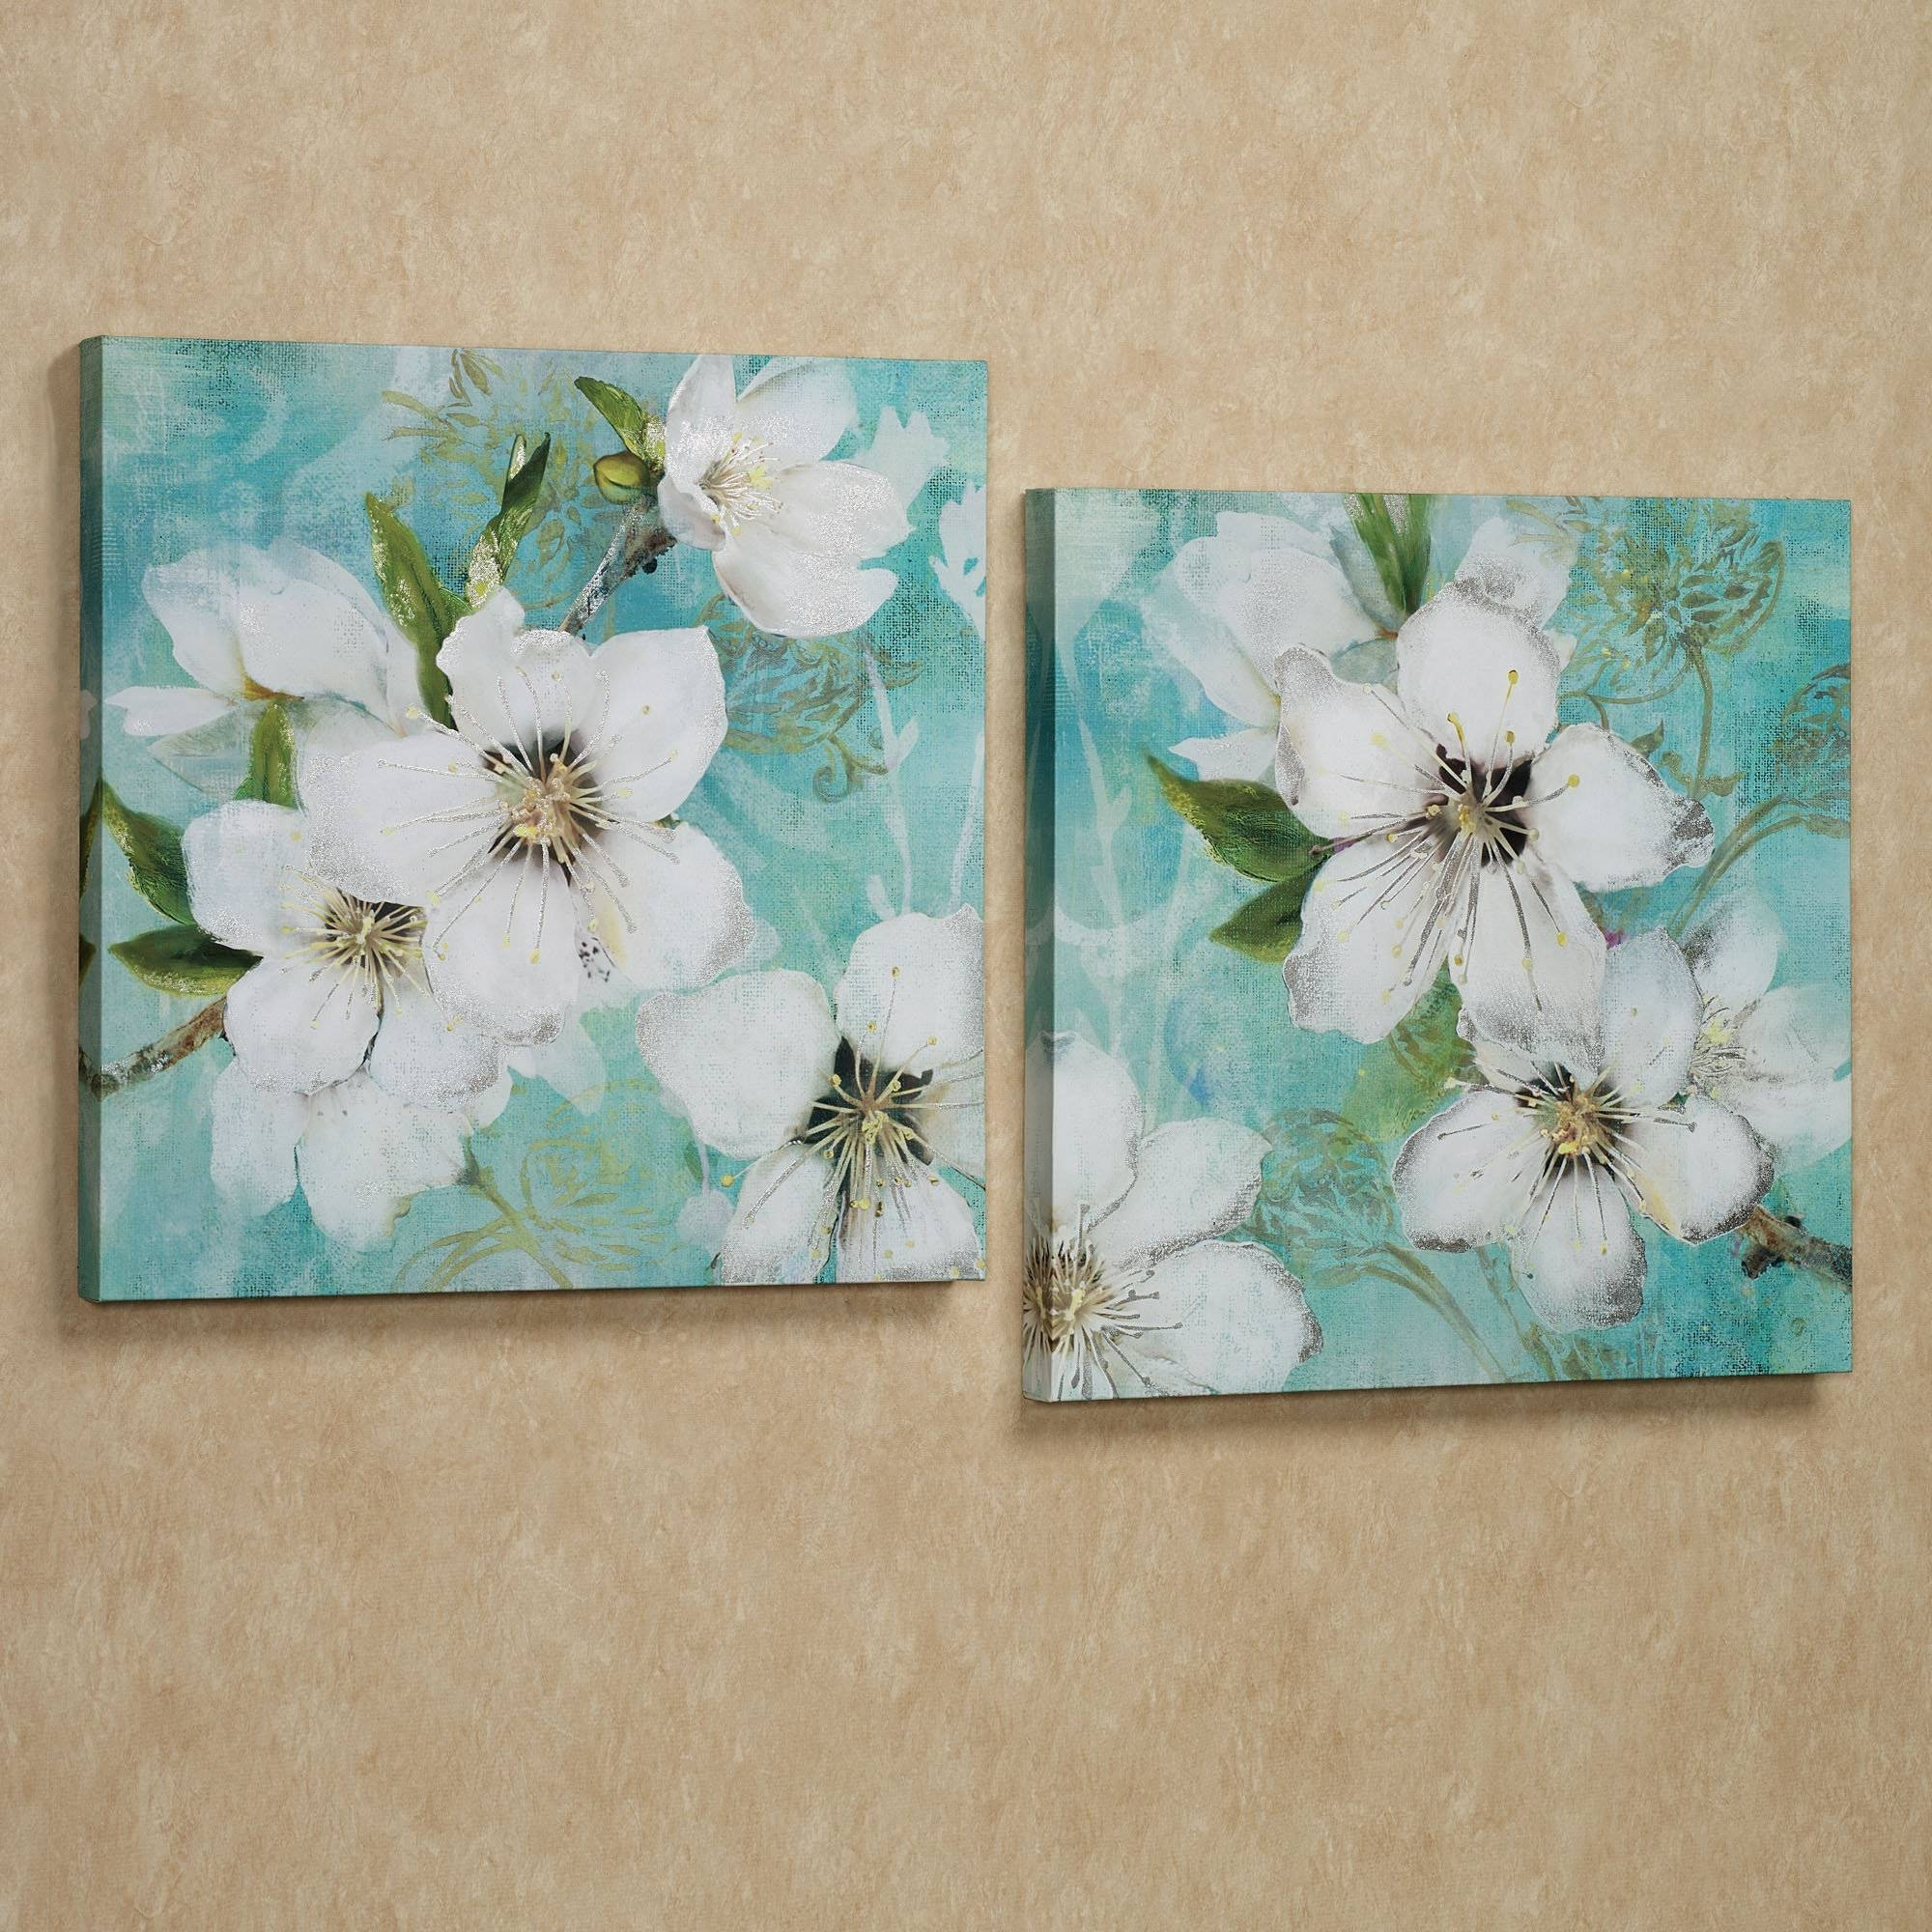 Wall Art Designs: Awesome Floral Wall Art Canvas Floral Wall Art Pertaining To Most Current Floral Wall Art Canvas (View 19 of 20)